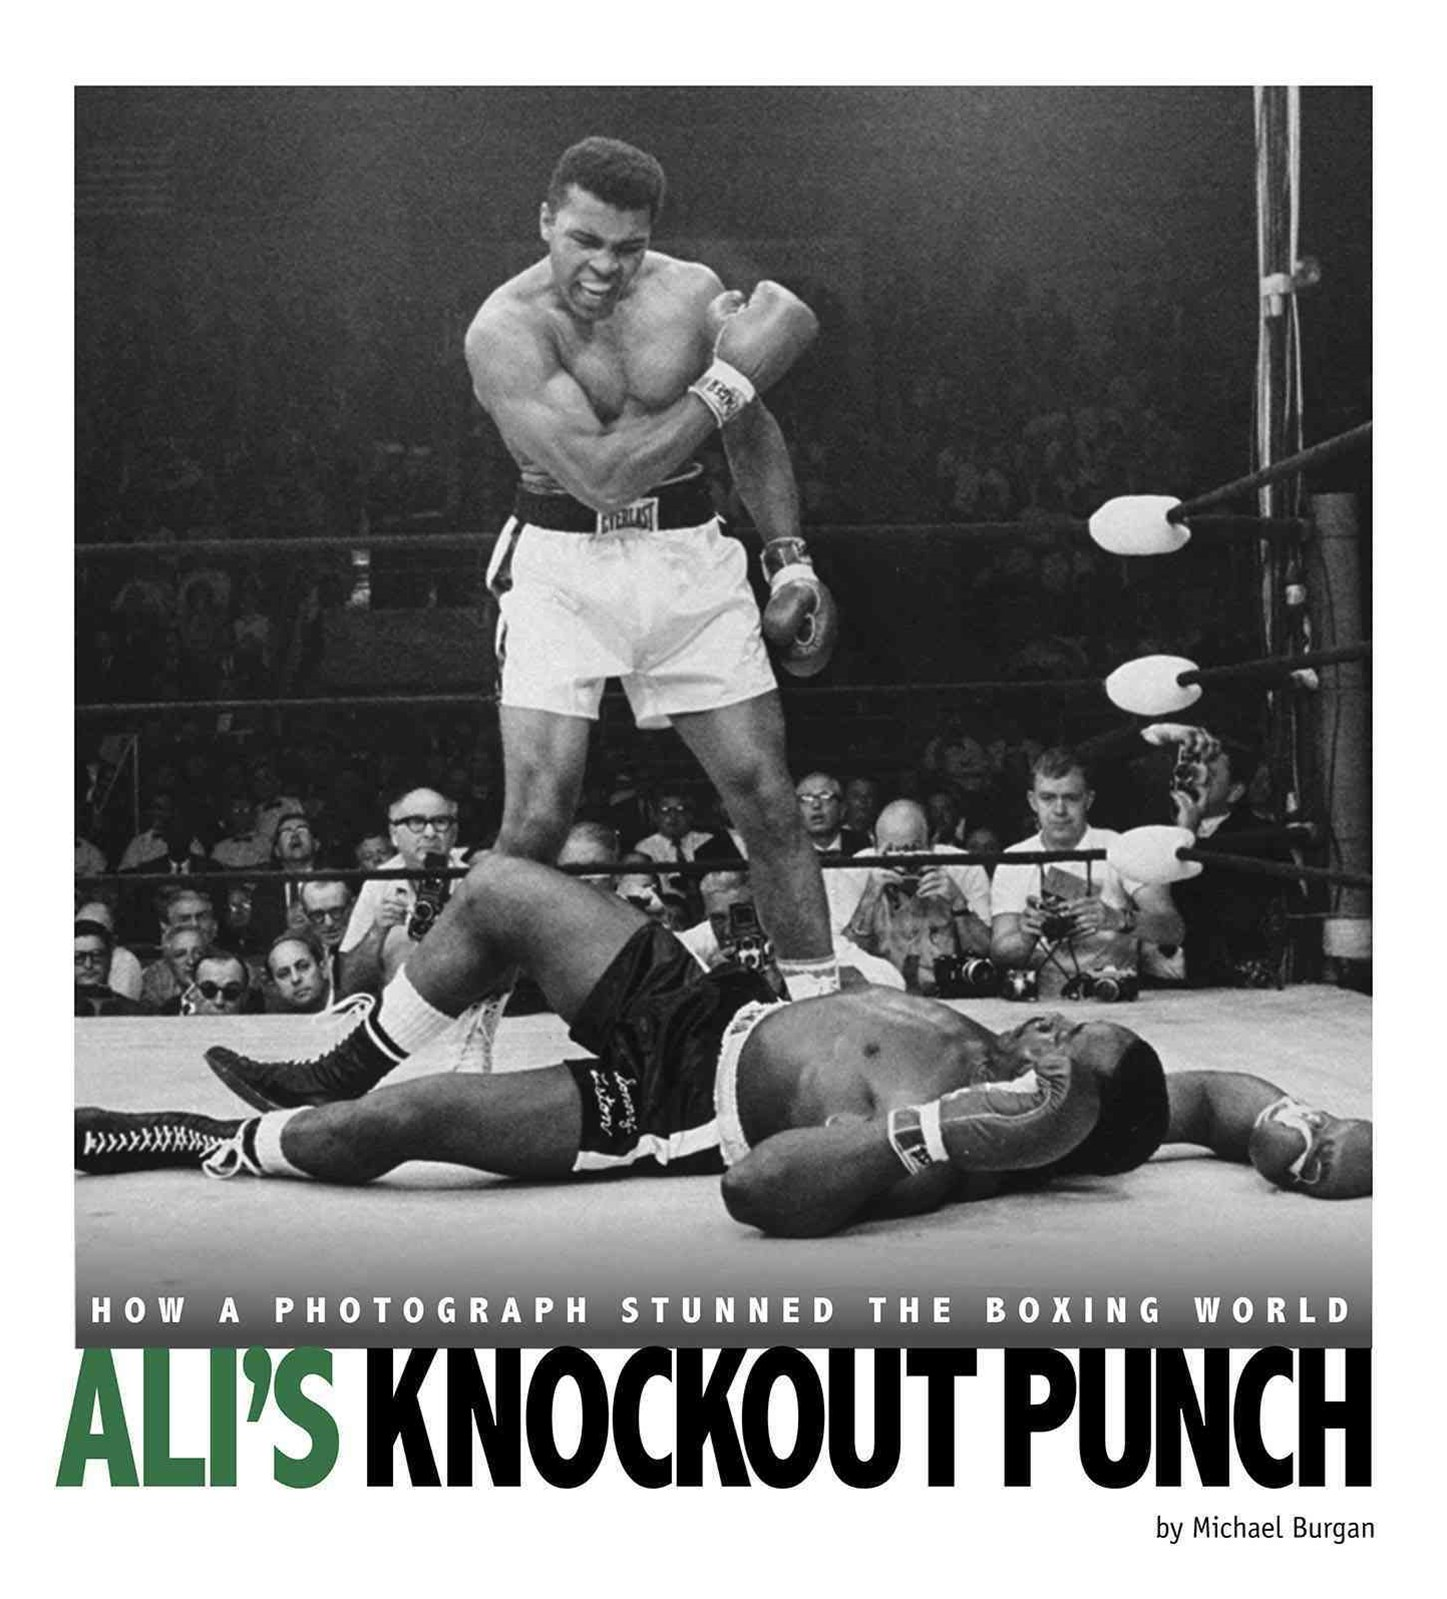 Ali's Knockout Punch